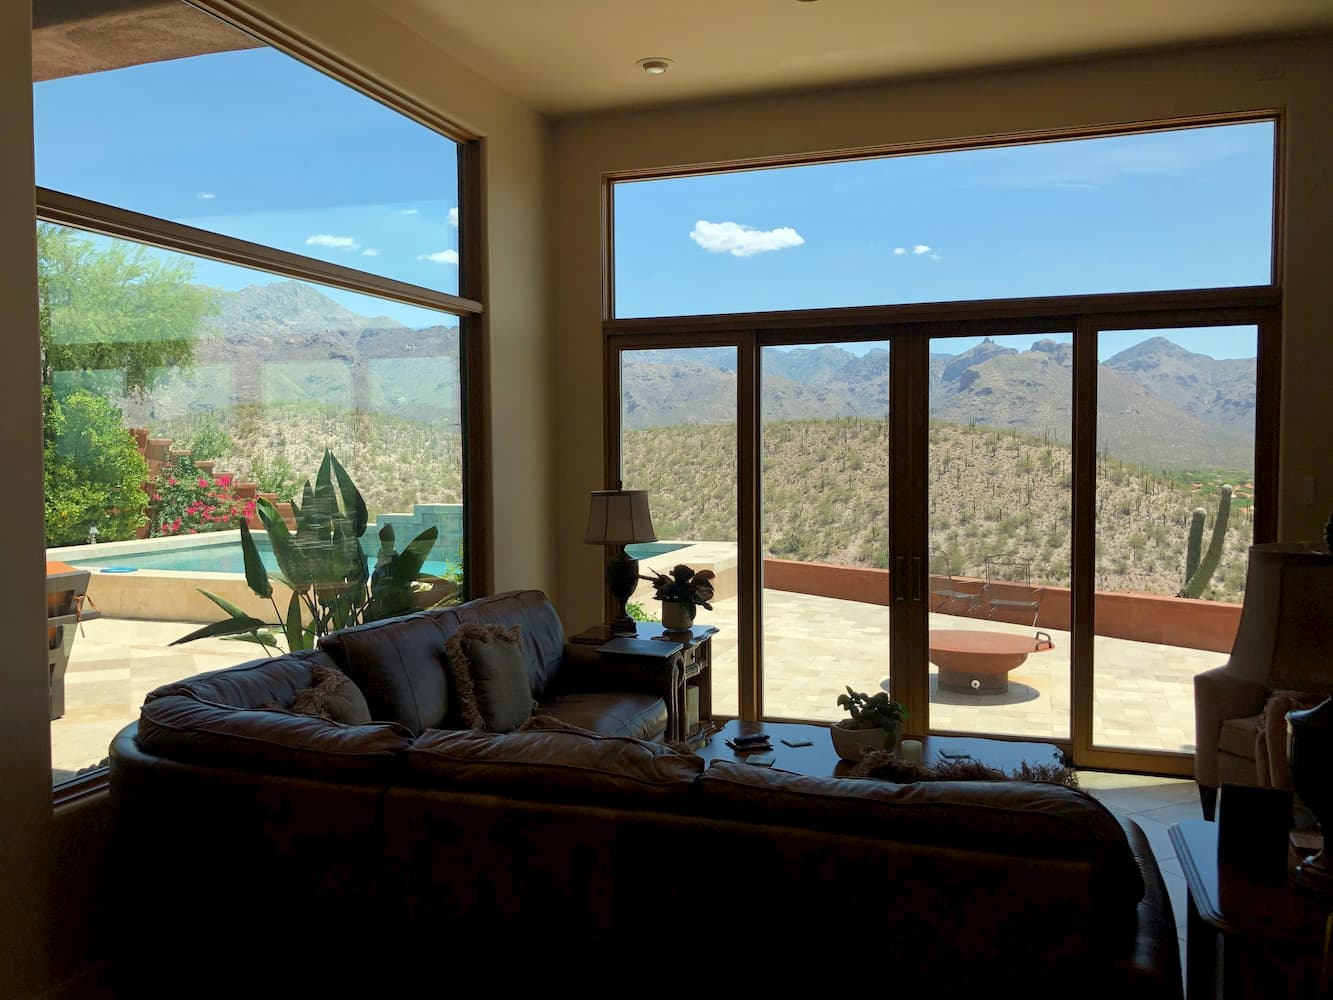 Interior view of sliding glass doors in Tucson home family room